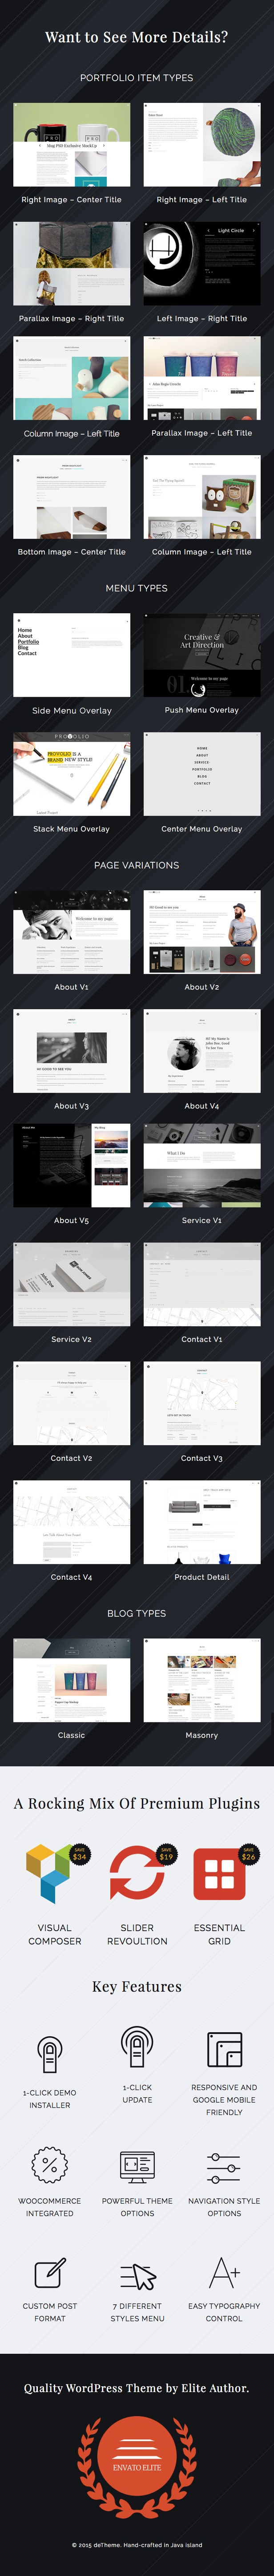 Provolio - WordPress Theme For Creative Minds